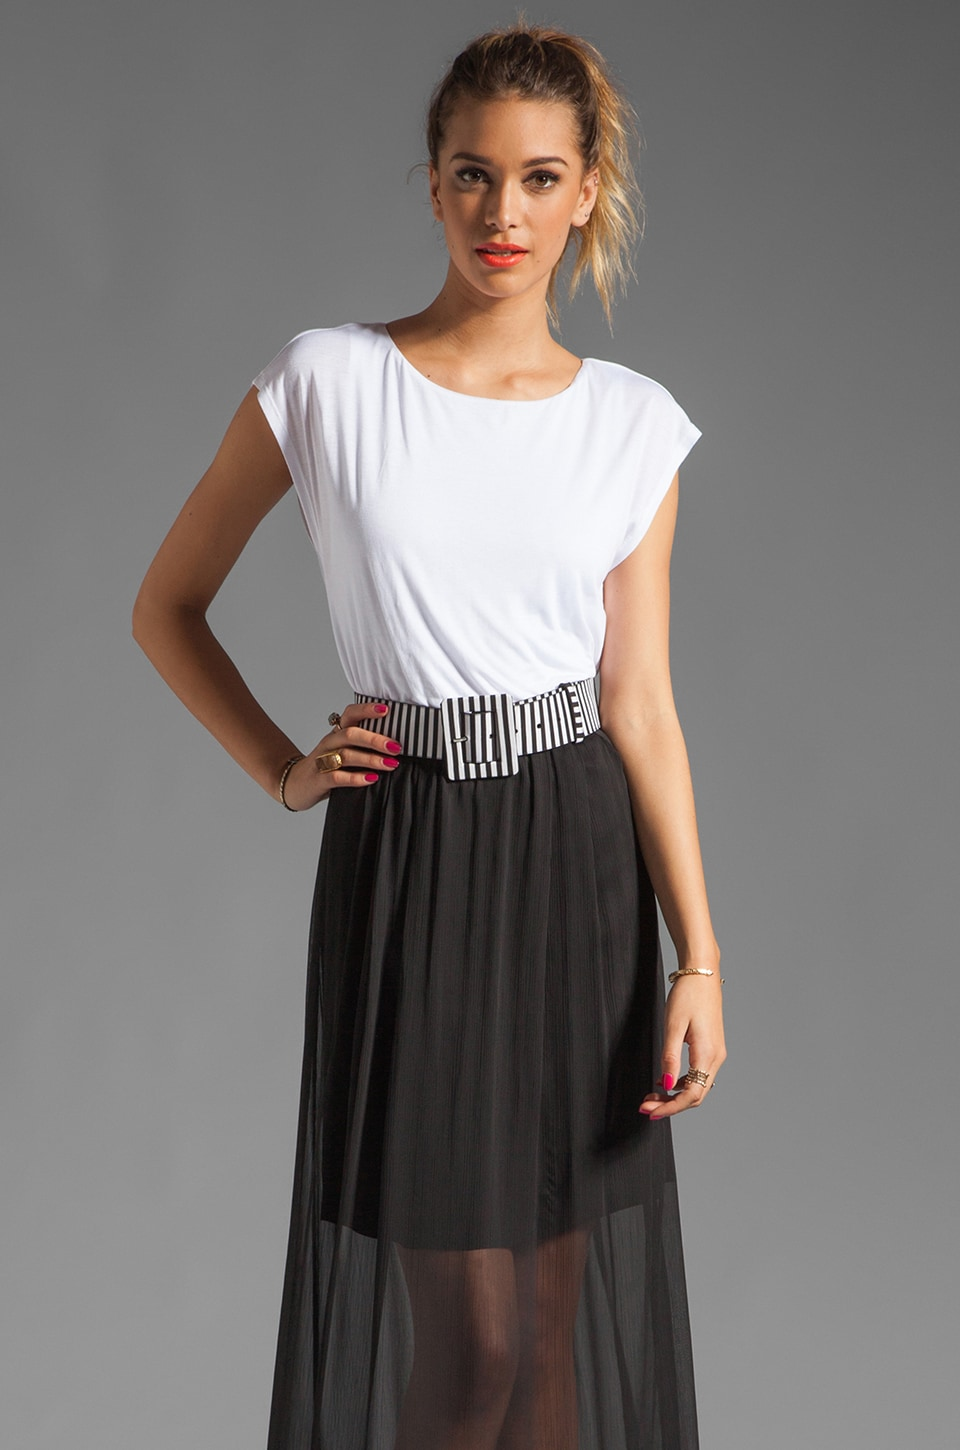 Alice + Olivia Kirean Dolman Dress with Belt in White/Black